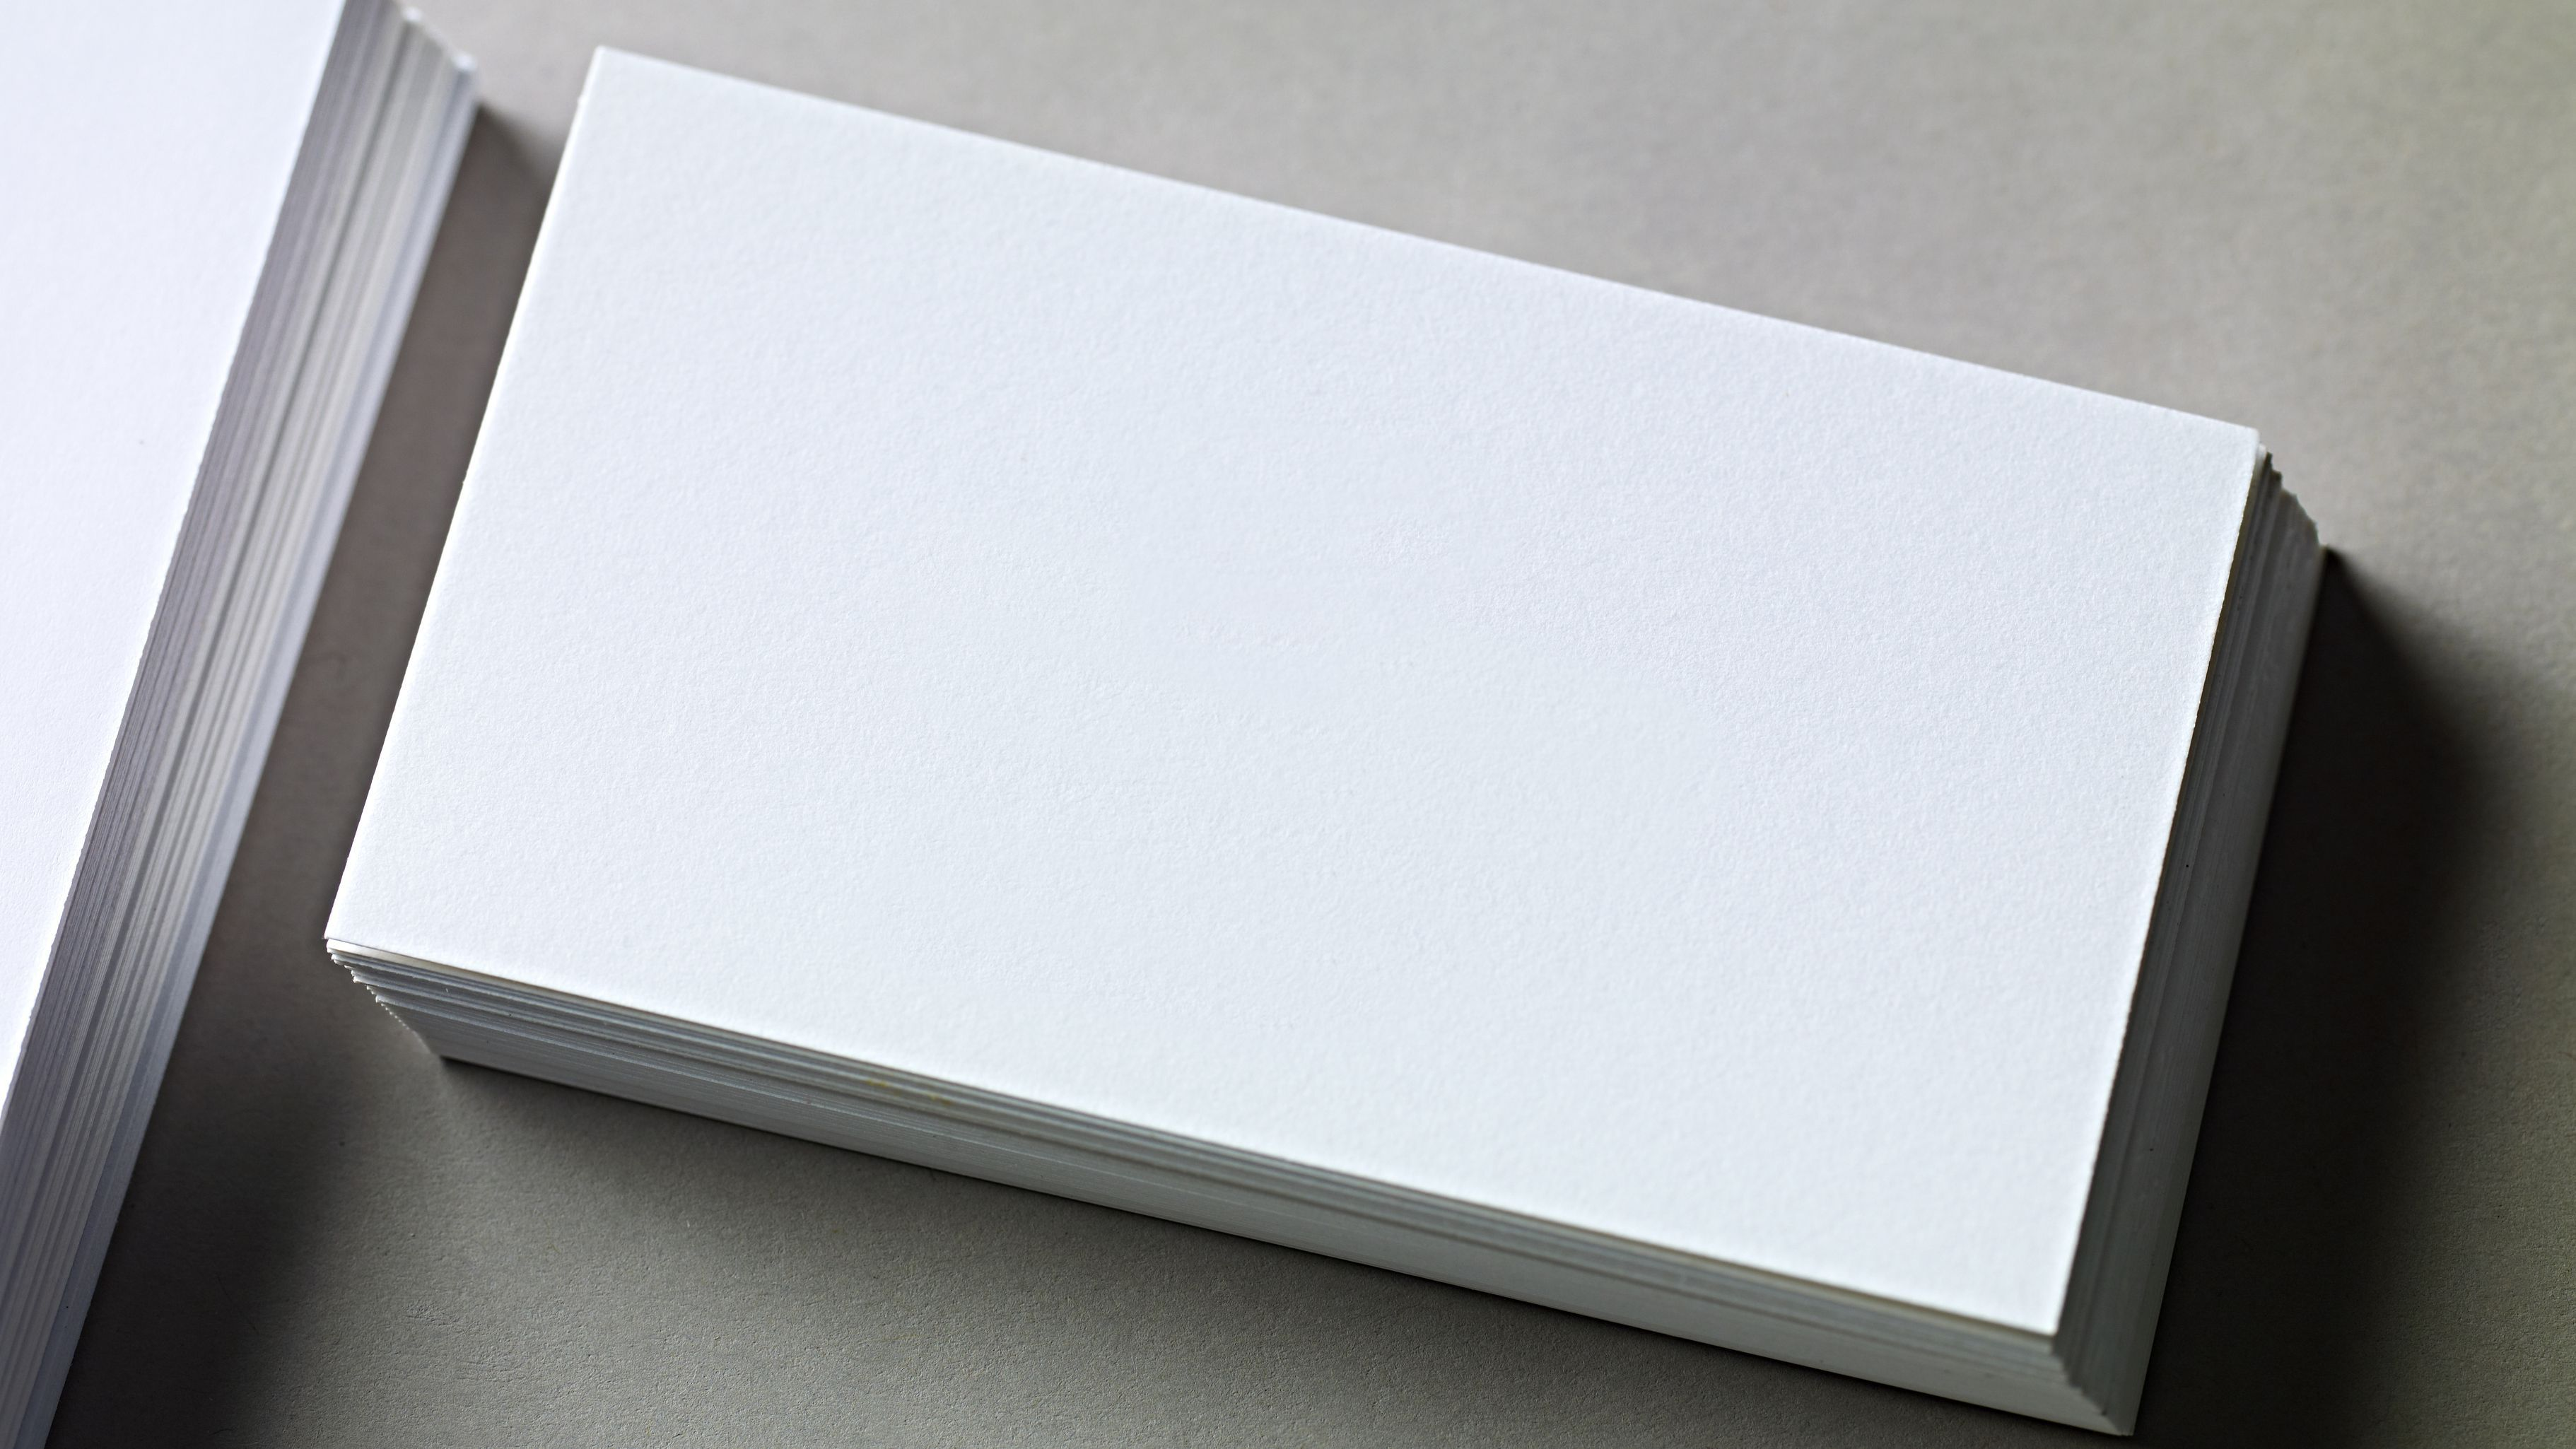 005 Archaicawful Blank Busines Card Template Photoshop Highest Clarity  Free Download PsdFull